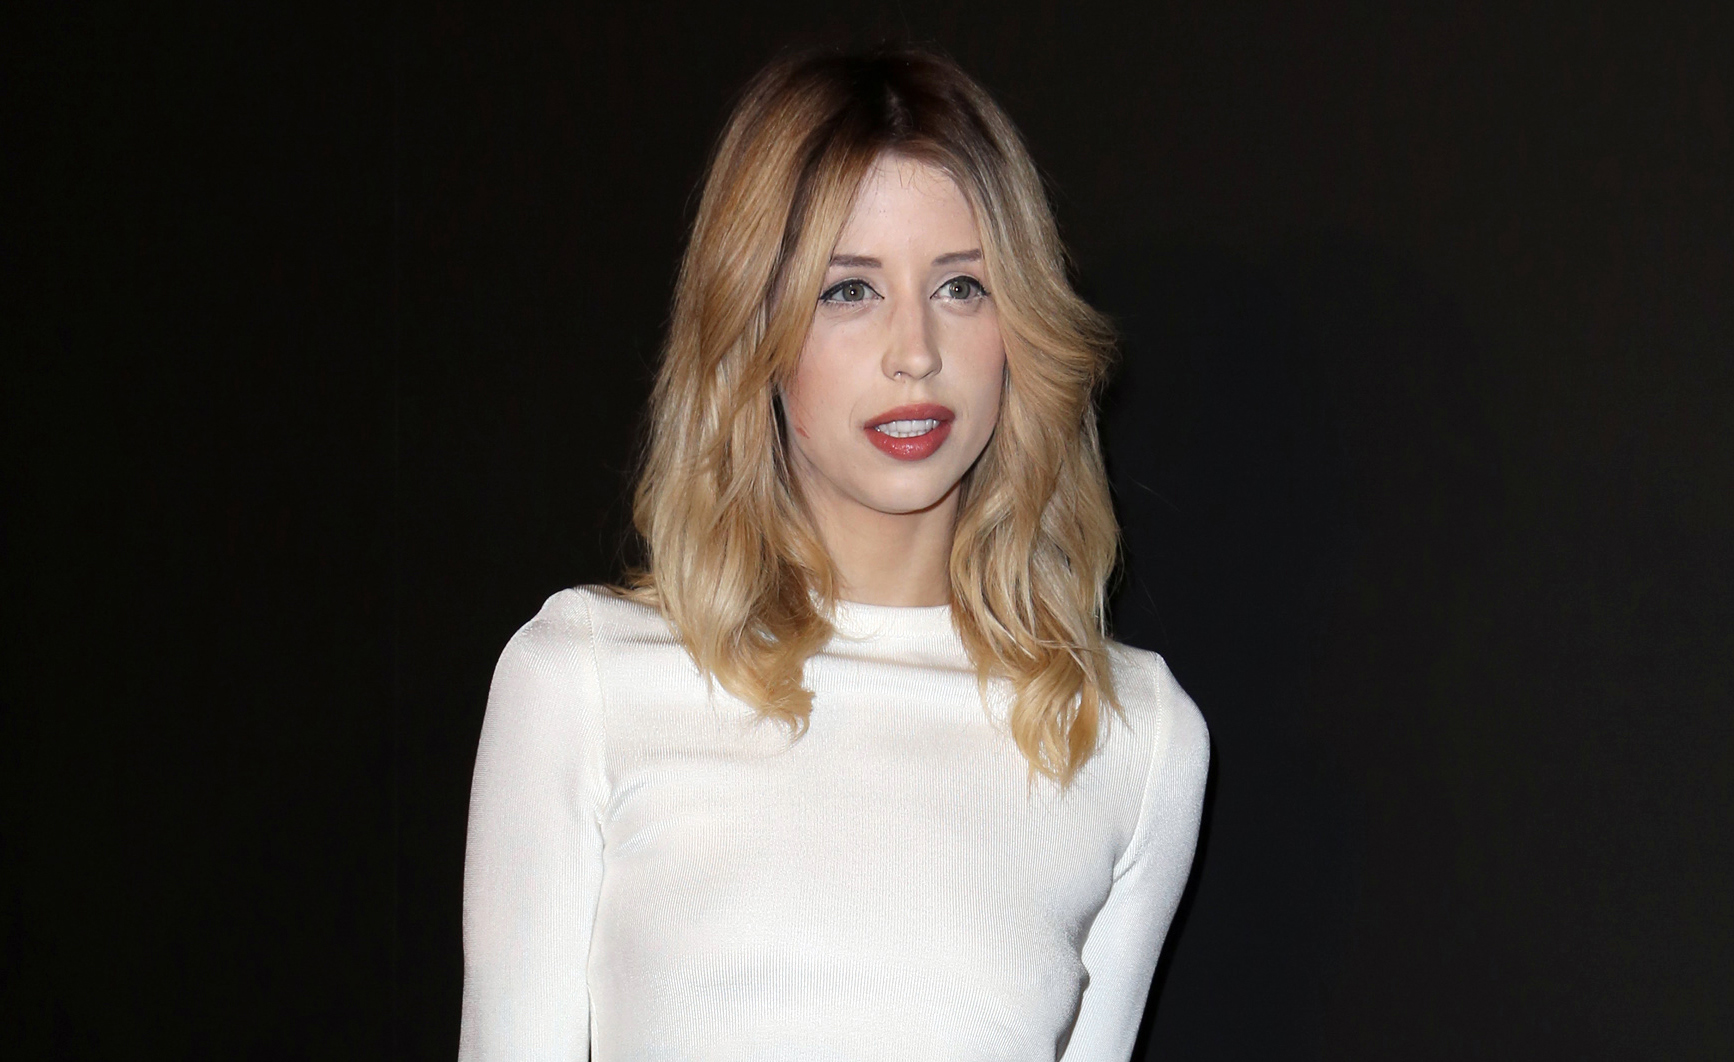 Daughter of famed singer Bob Geldof, Peaches, 25, died of heroin overdose.